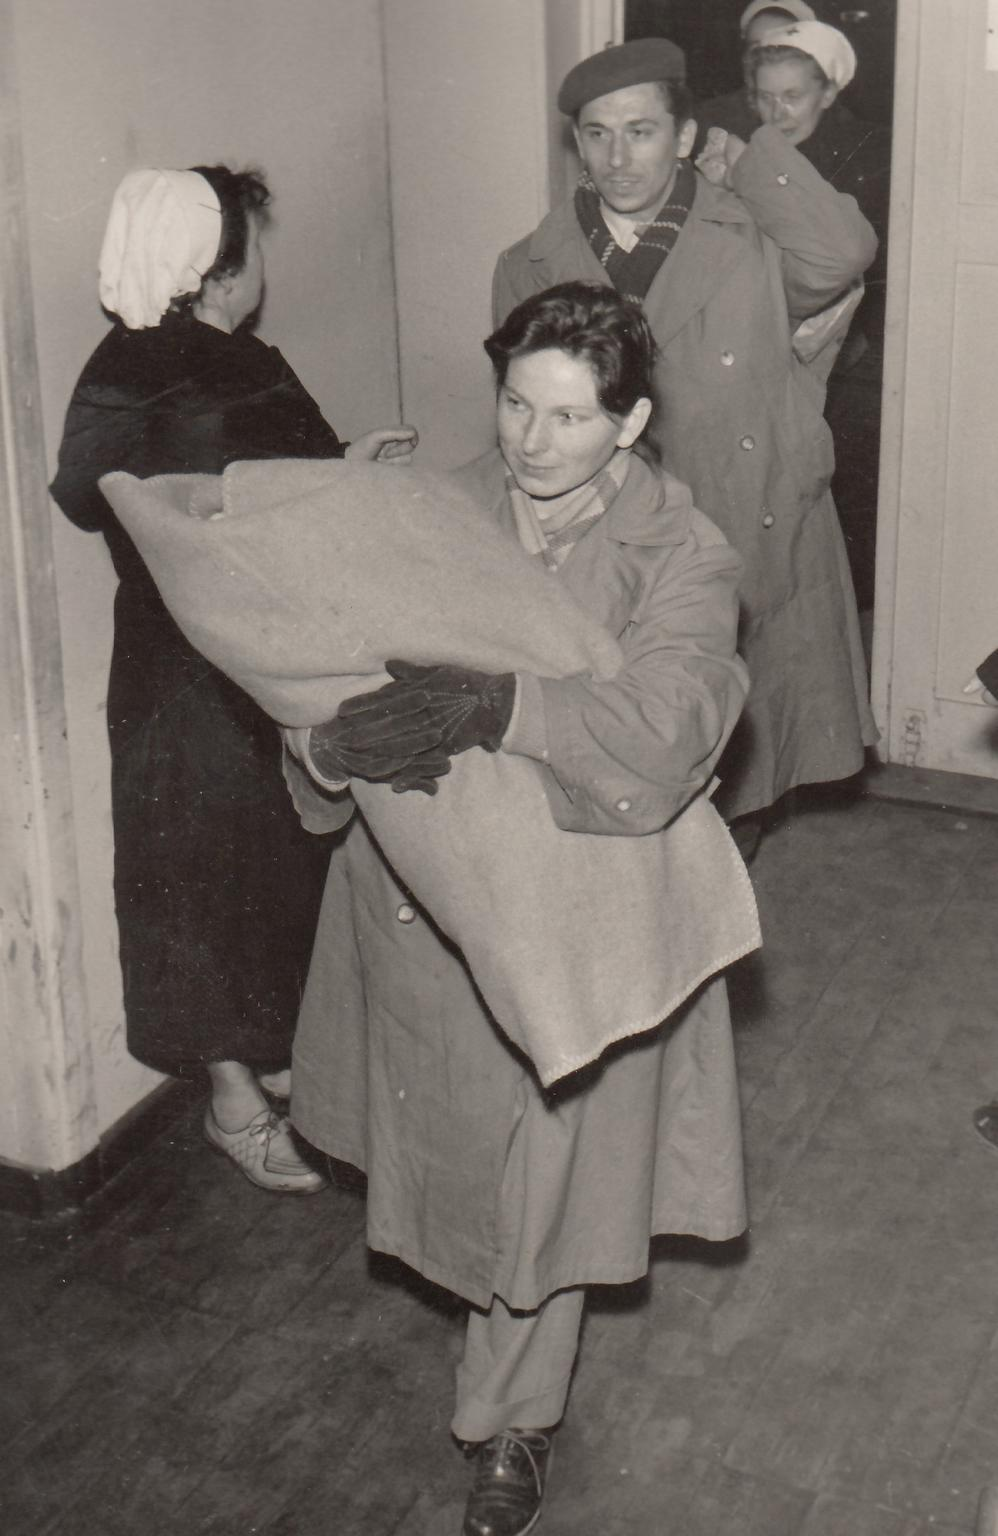 Refugees from Hungary arriving in the transit camp, 1956